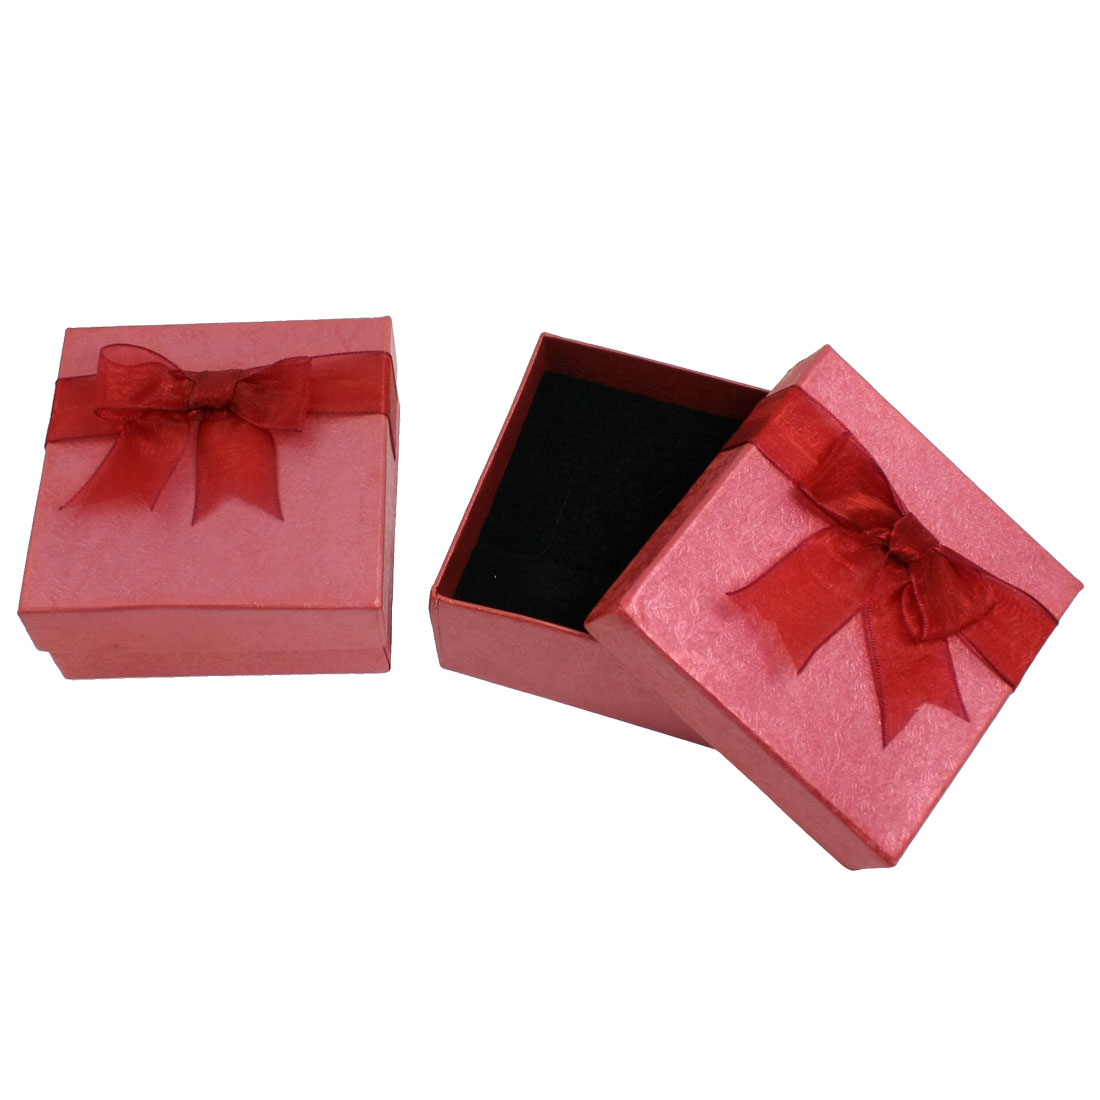 2 Pcs Bowtie Flower Pattern Cuboid Gift Cardboard Case Red